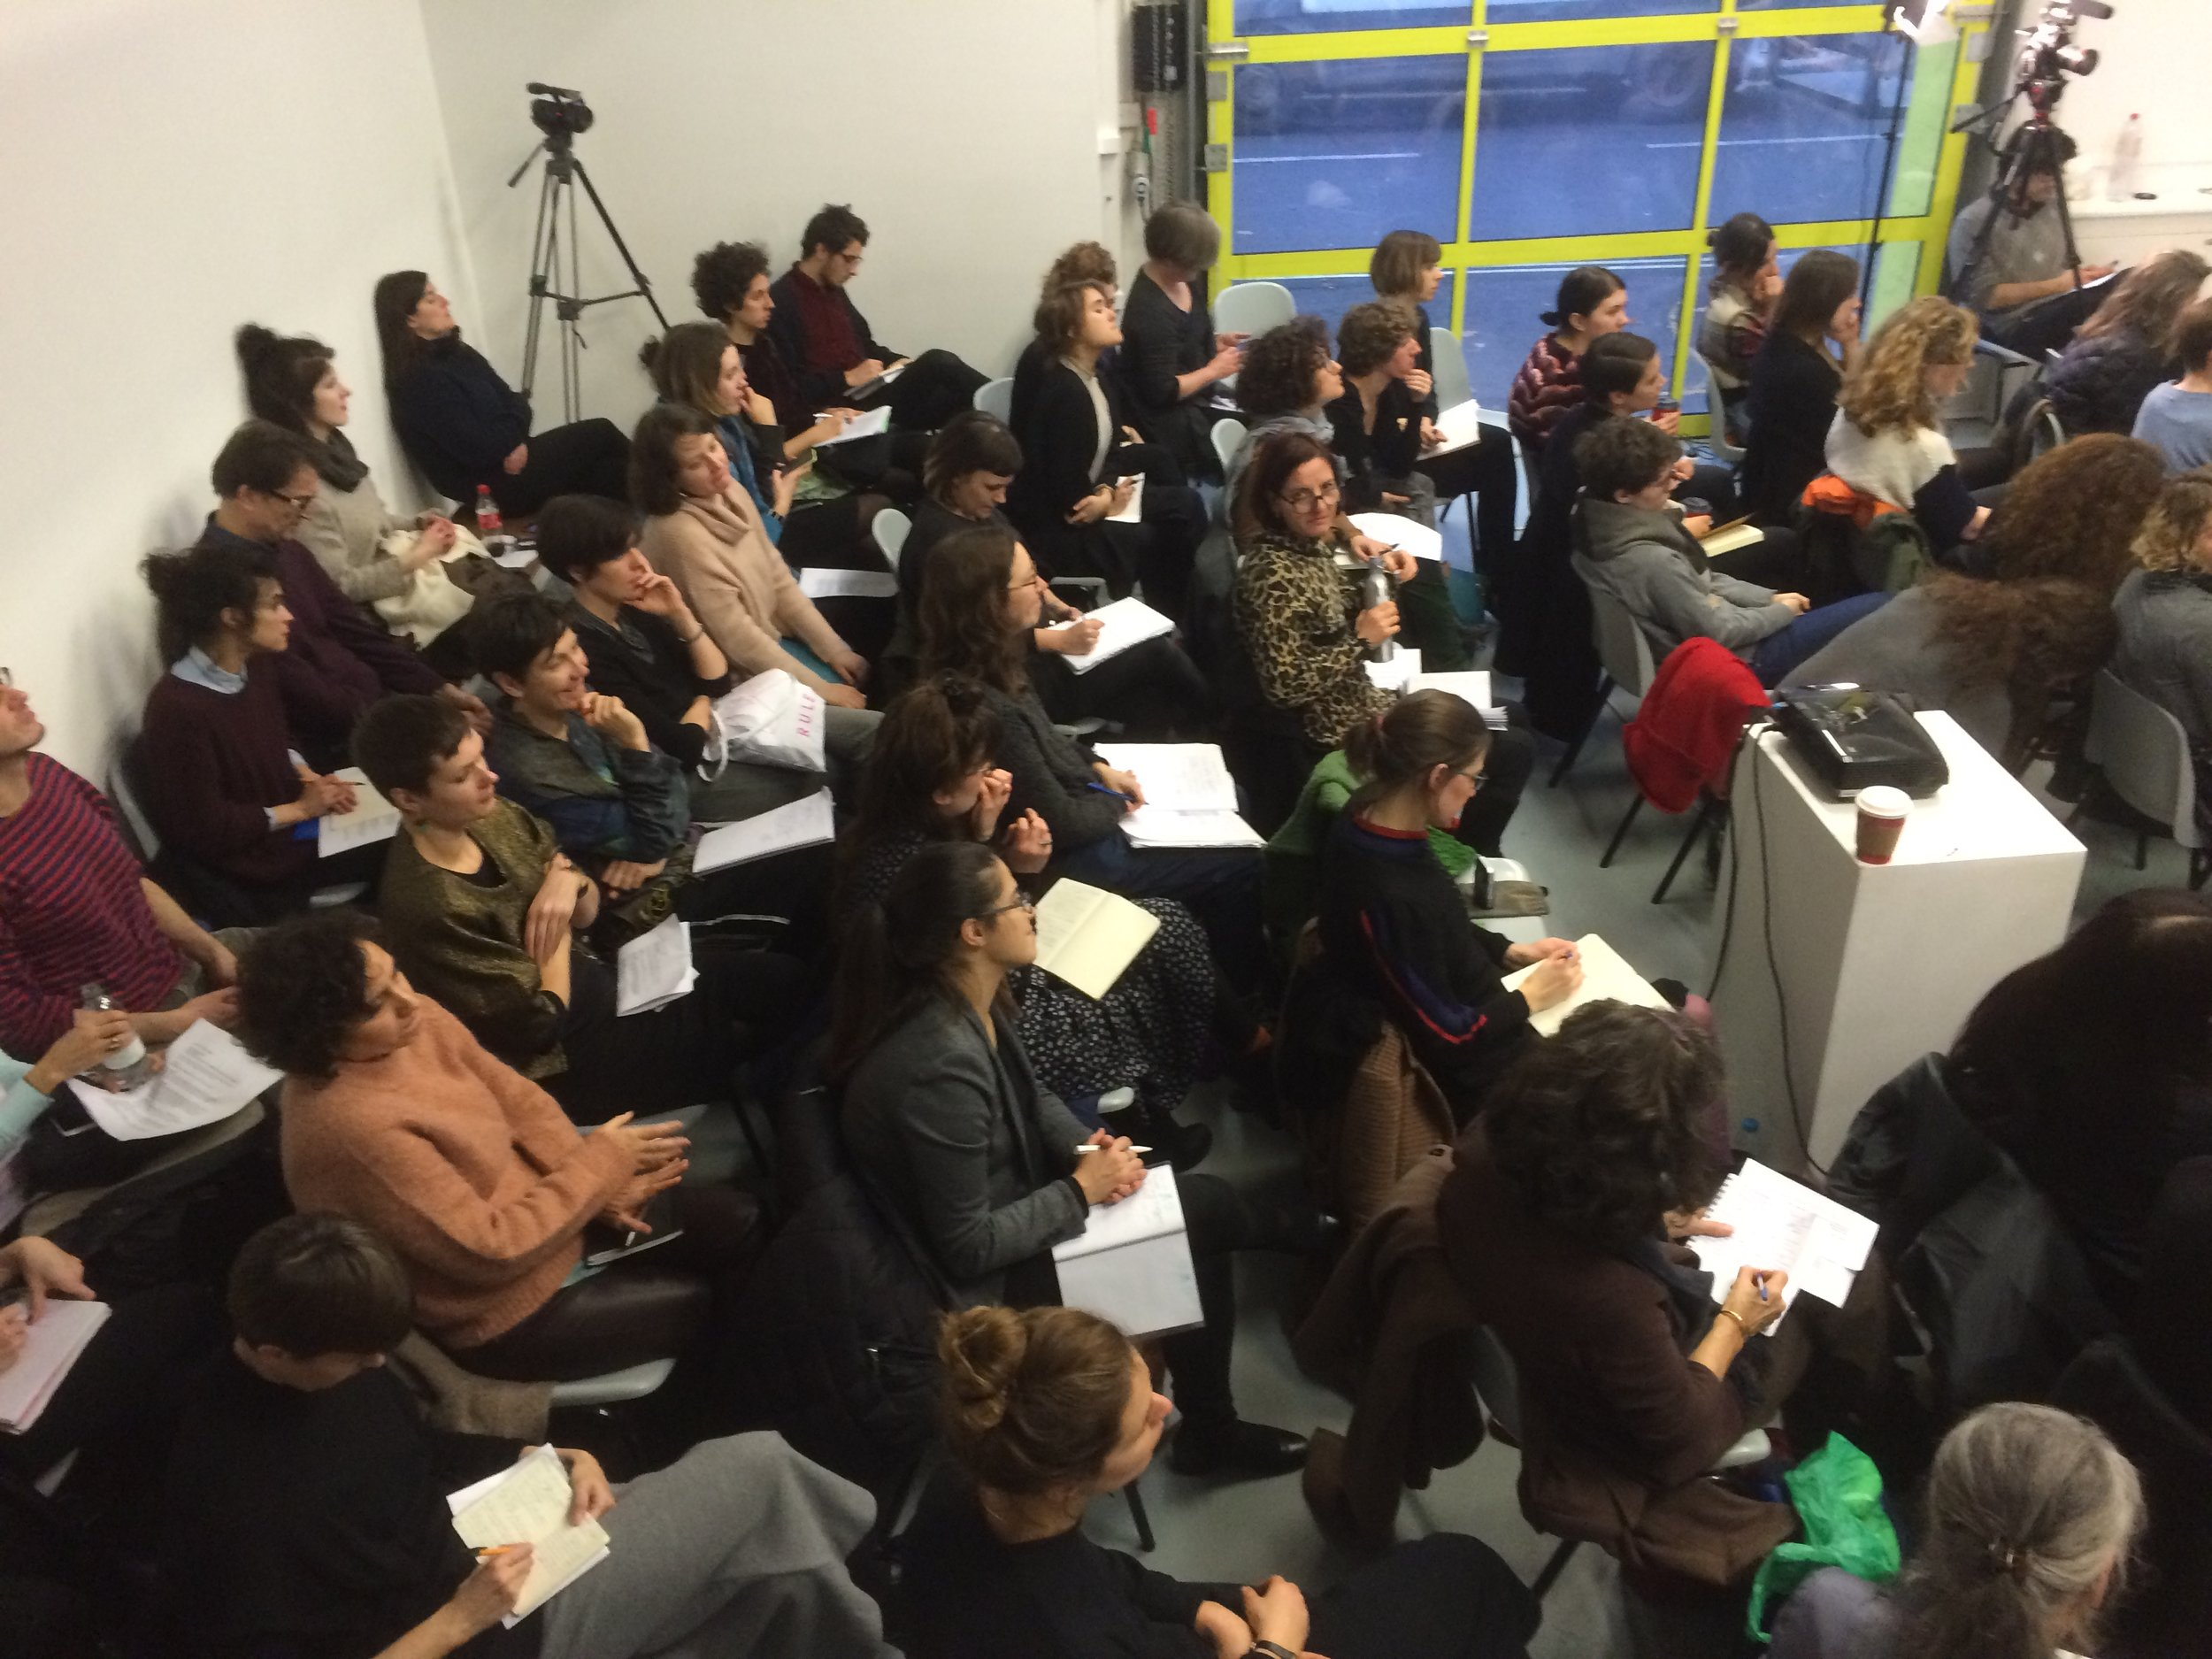 Don't Believe You Have Any Rights, seminar, The Showroom, London, as part of Now You Can Go, December 2015. Photo Helena Reckitt.